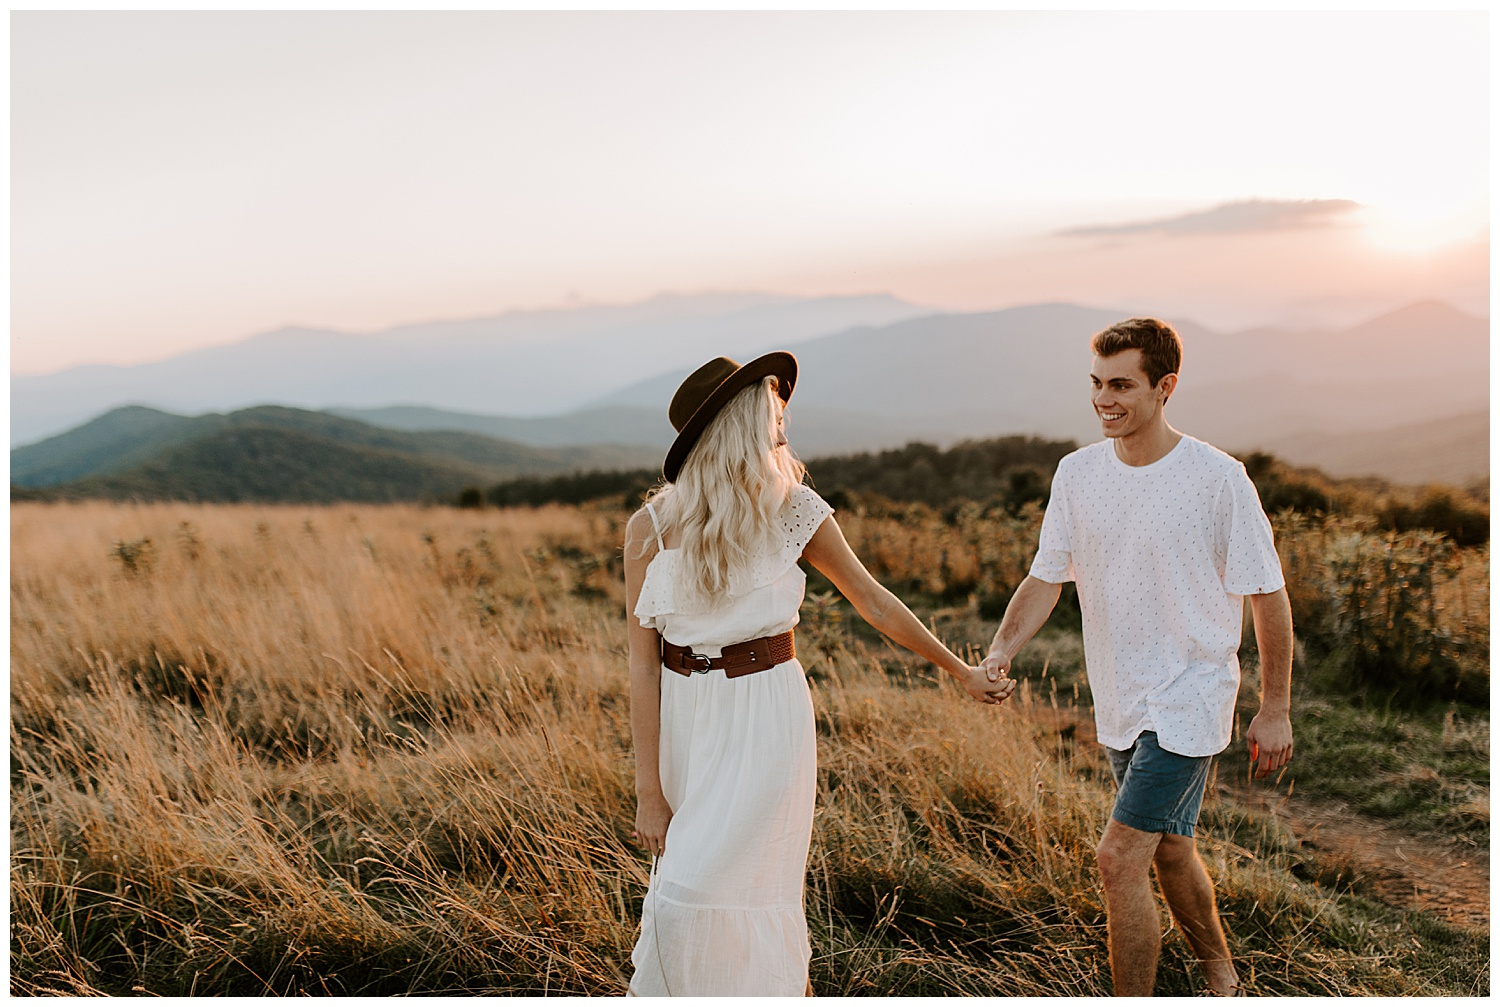 HANNAH_NICK_MAXPATCH_ENGAGEMENT2019-09-05_0025.jpg